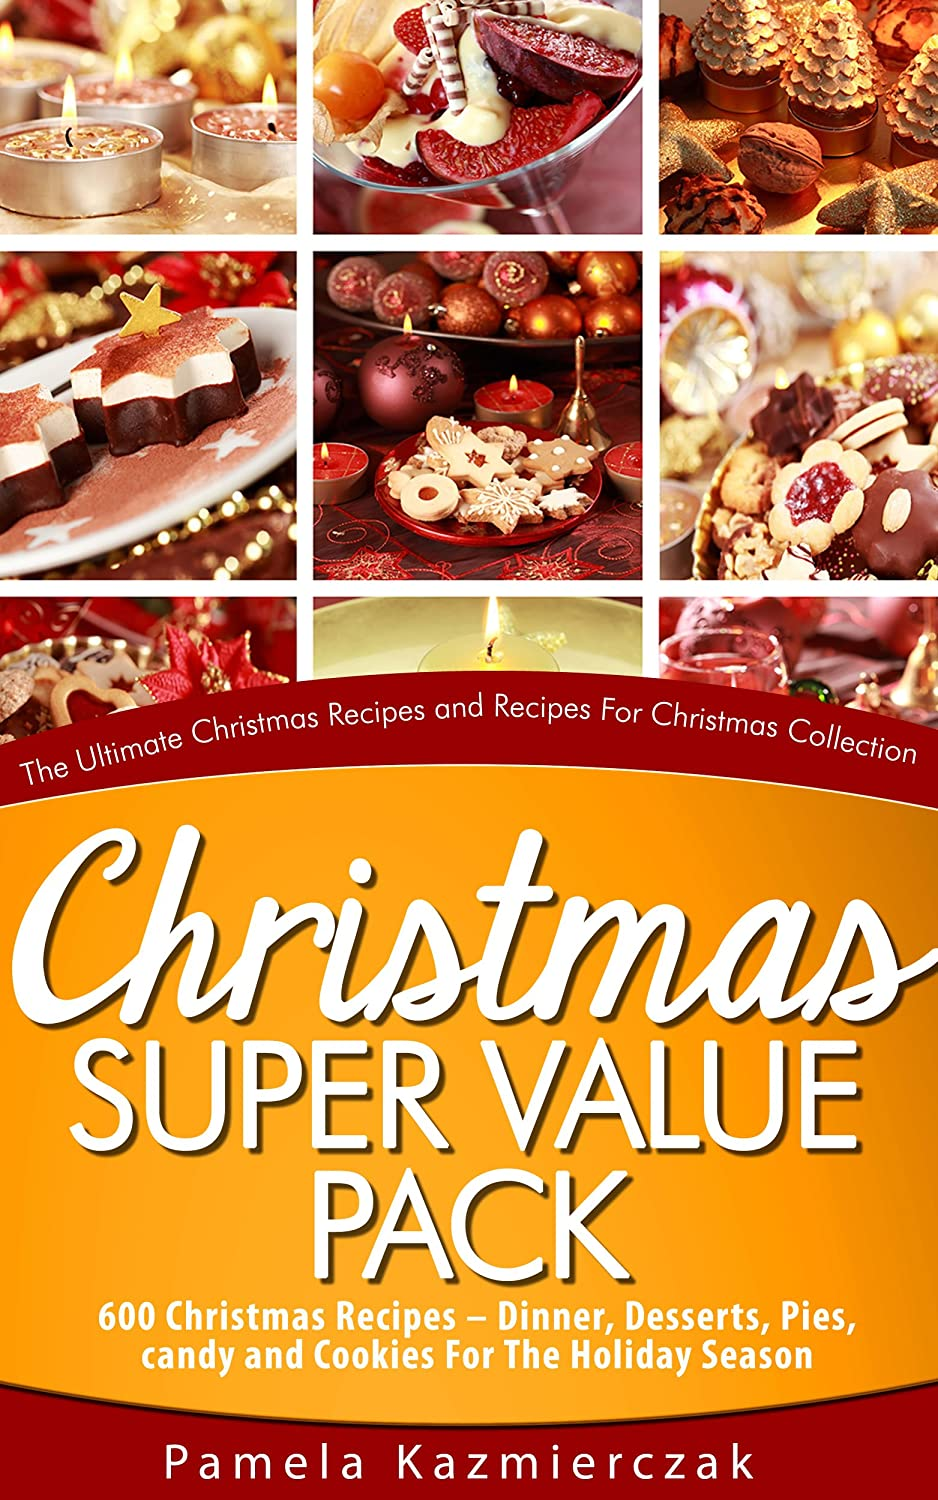 http://www.amazon.com/Christmas-Super-Value-Pack-Collection-ebook/dp/B00HBFYIK0/ref=as_sl_pc_ss_til?tag=lettfromahome-20&linkCode=w01&linkId=FLKKRB67YZJ32LEA&creativeASIN=B00HBFYIK0